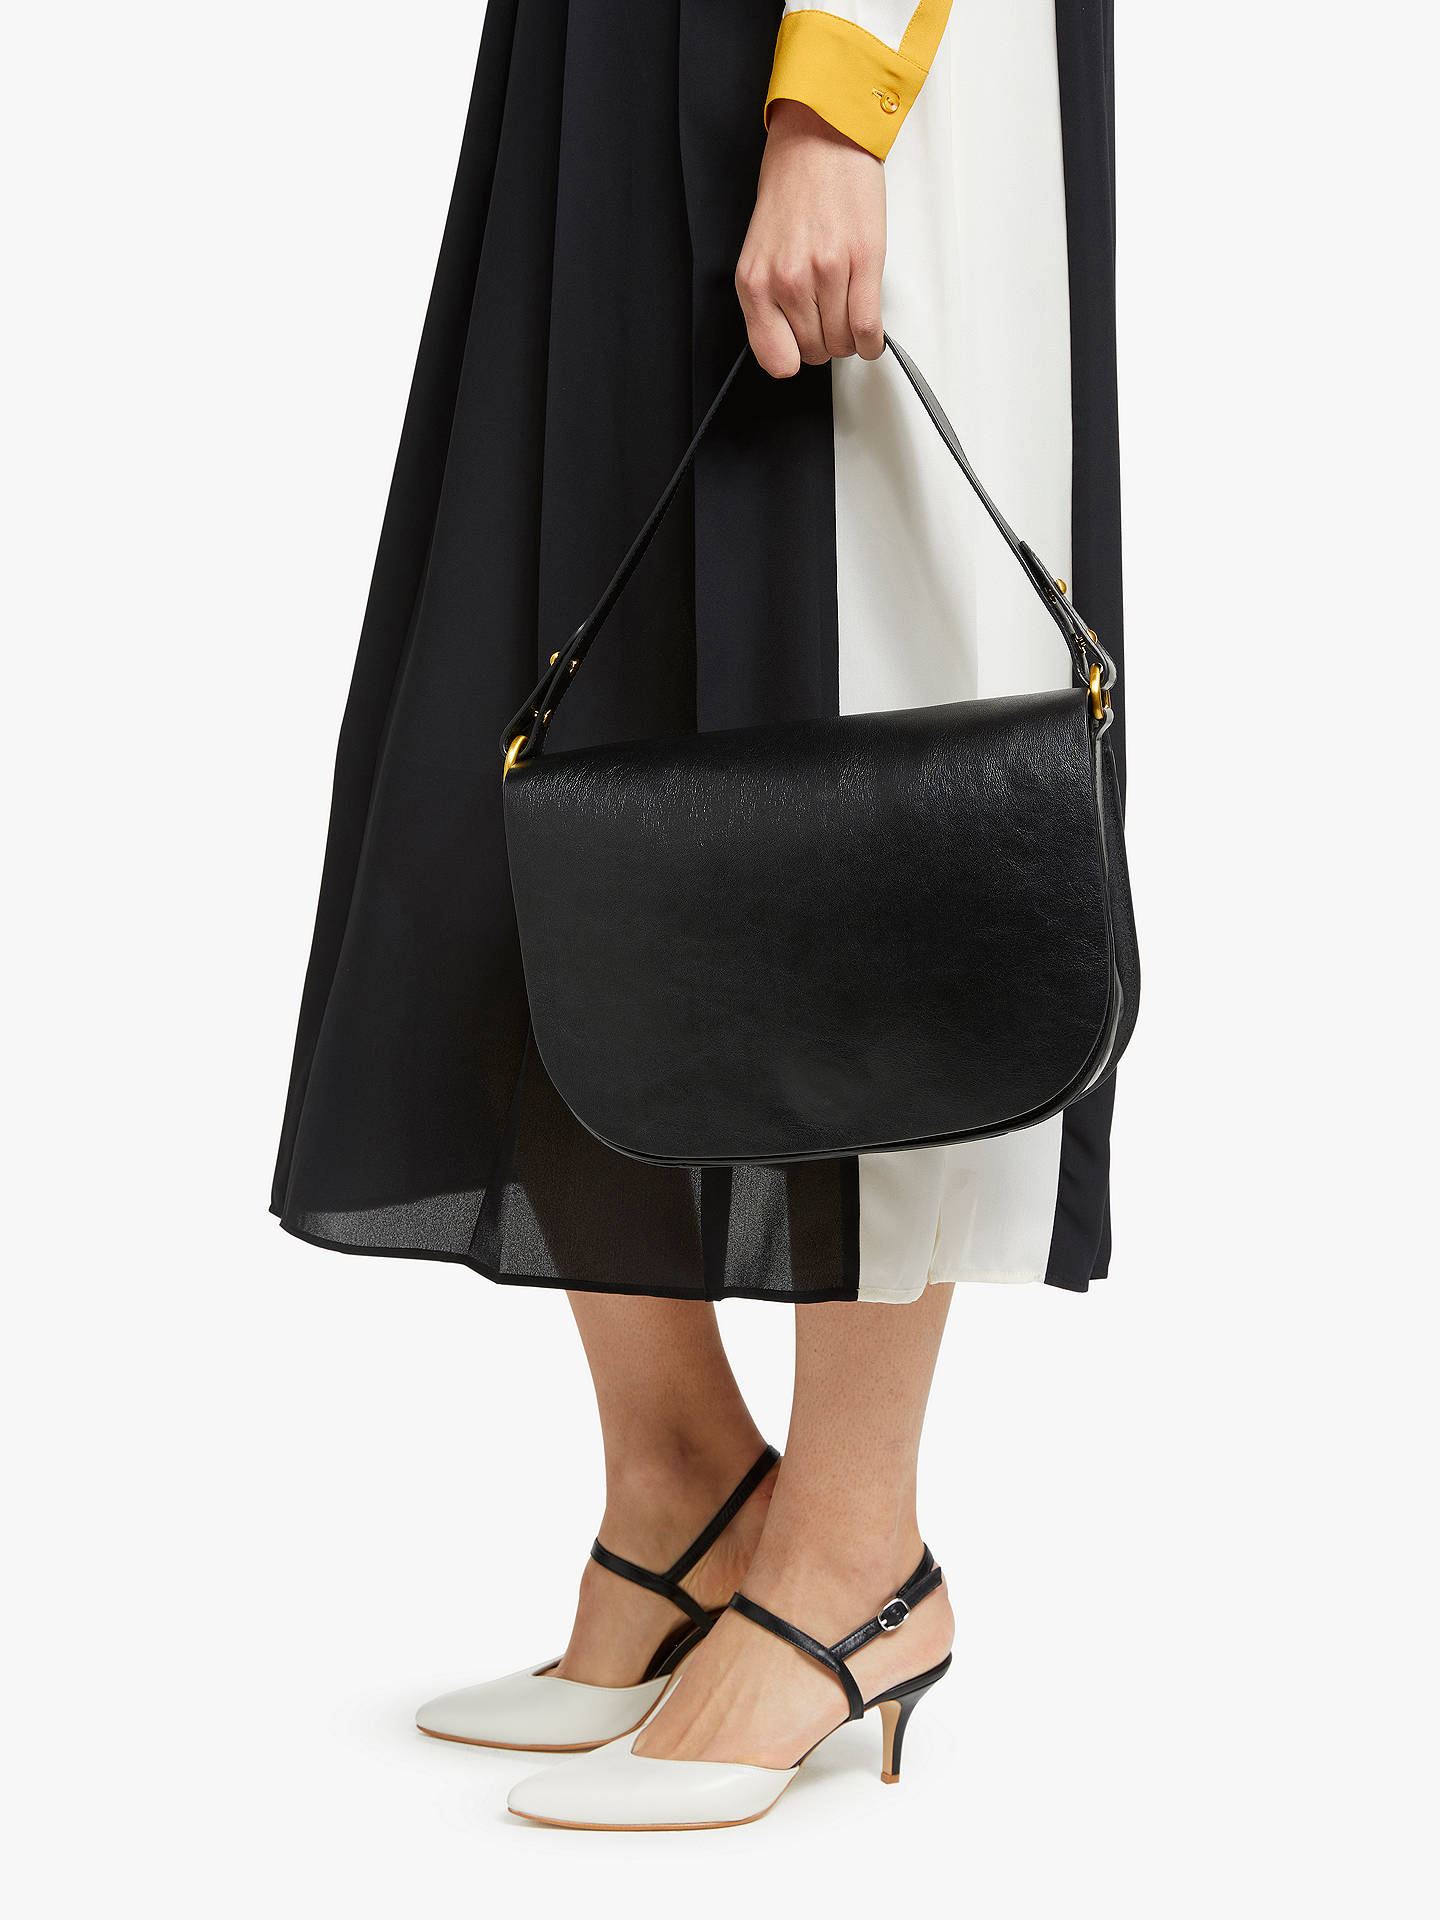 b47f6e841b Buy John Lewis & Partners Delany Leather Saddle Shoulder Bag, Black Online  at johnlewis.